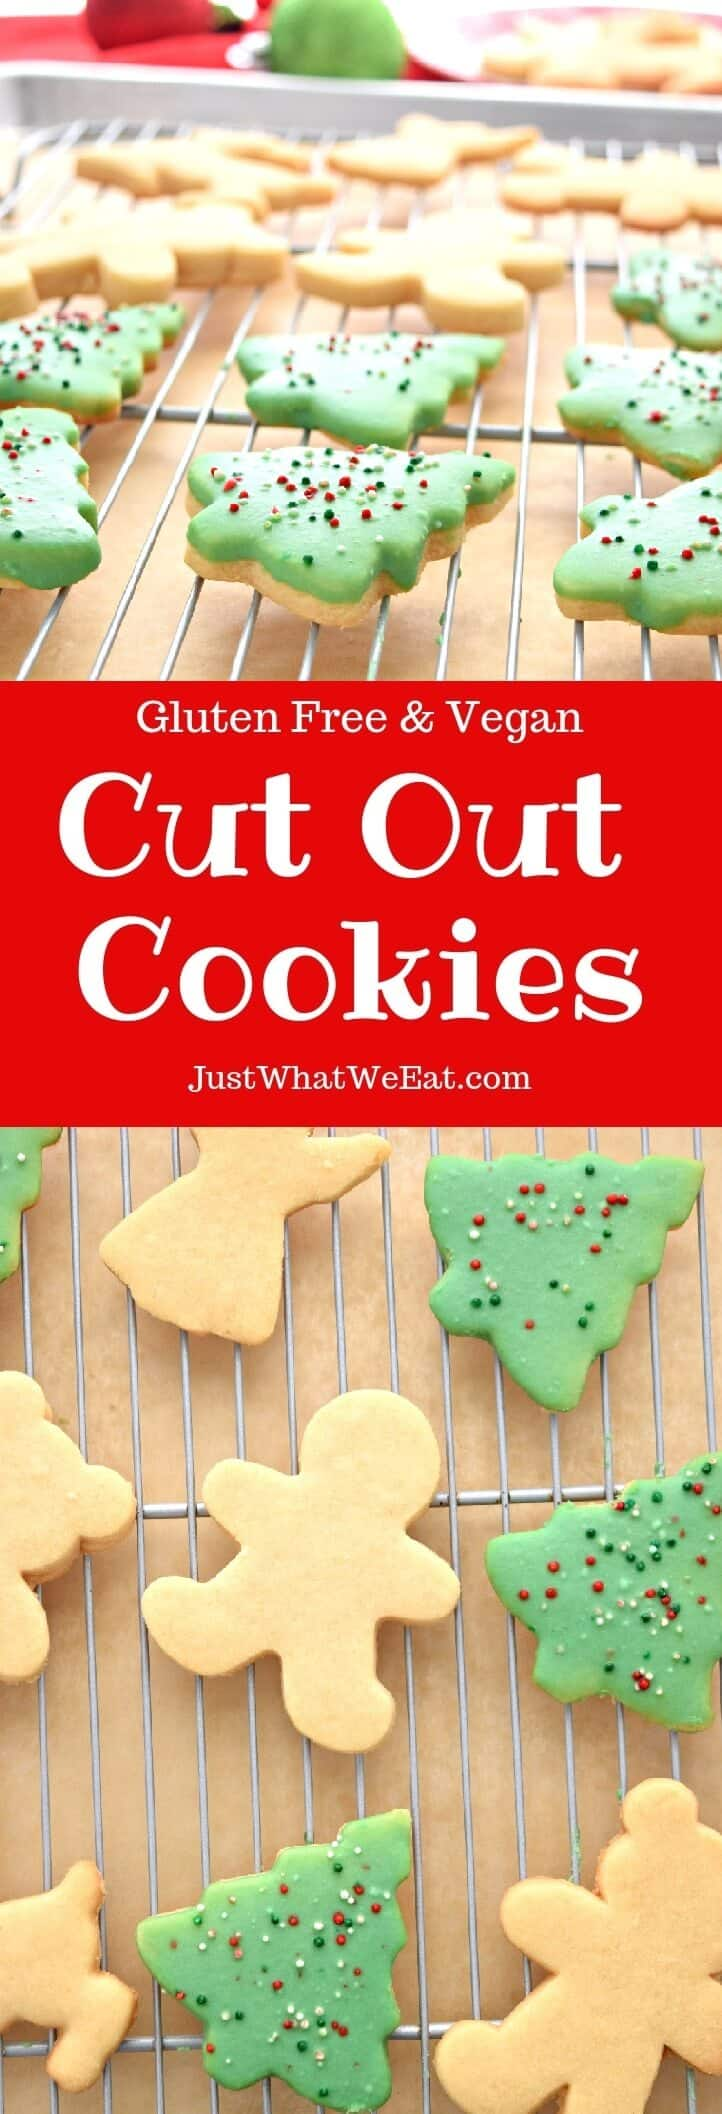 Cut Out Cookies - Gluten Free and Vegan